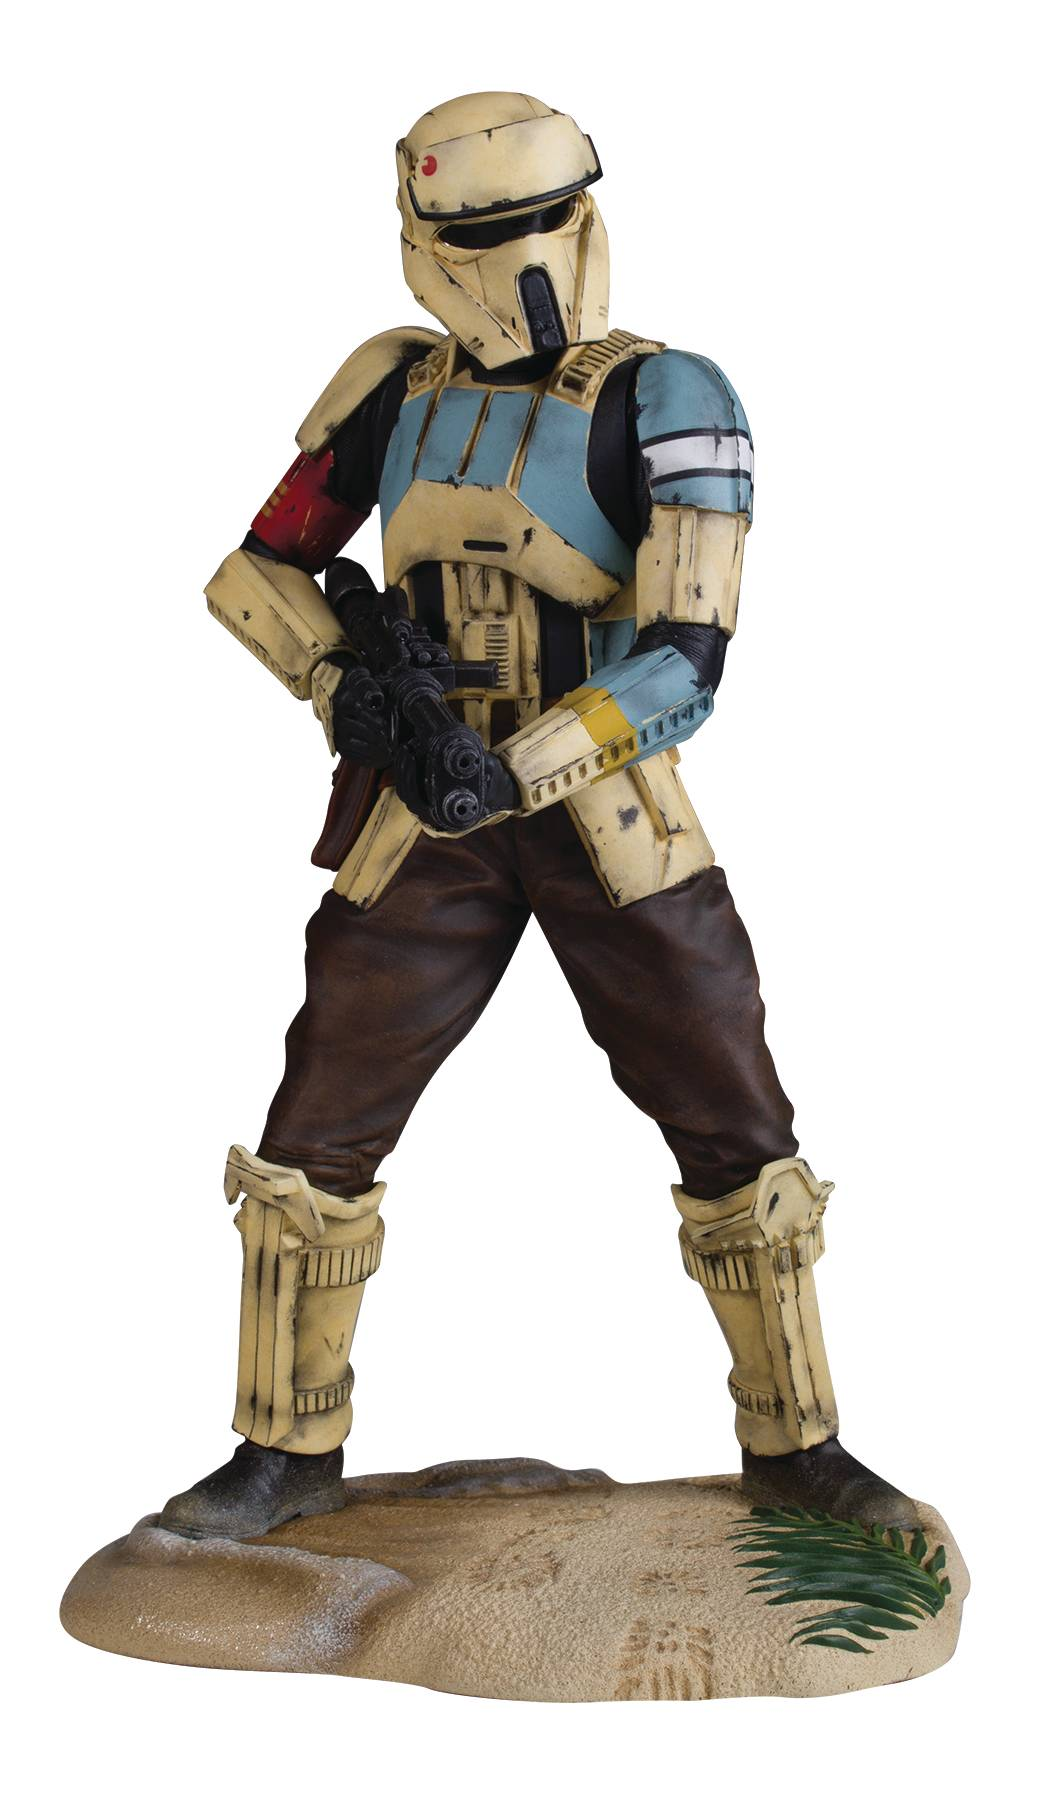 Star Wars Rogue One Collectors Gallery Shoretrooper 9'' Statue by Gentle Giant